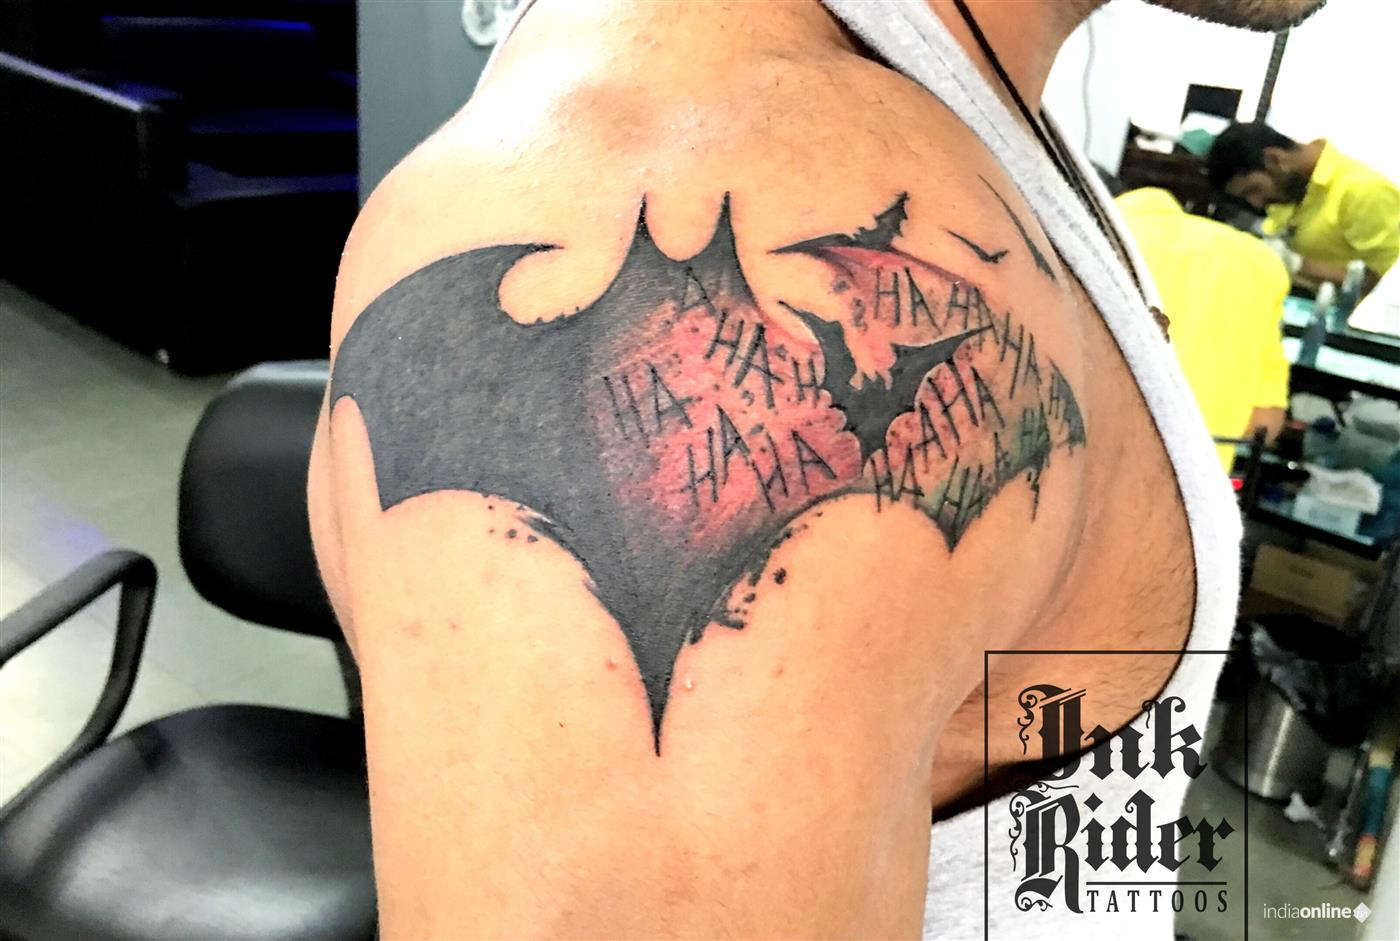 0a4364cac Permanent Designer Tattoo in Chandpole Udaipur by Ink Rider Tattoos ...